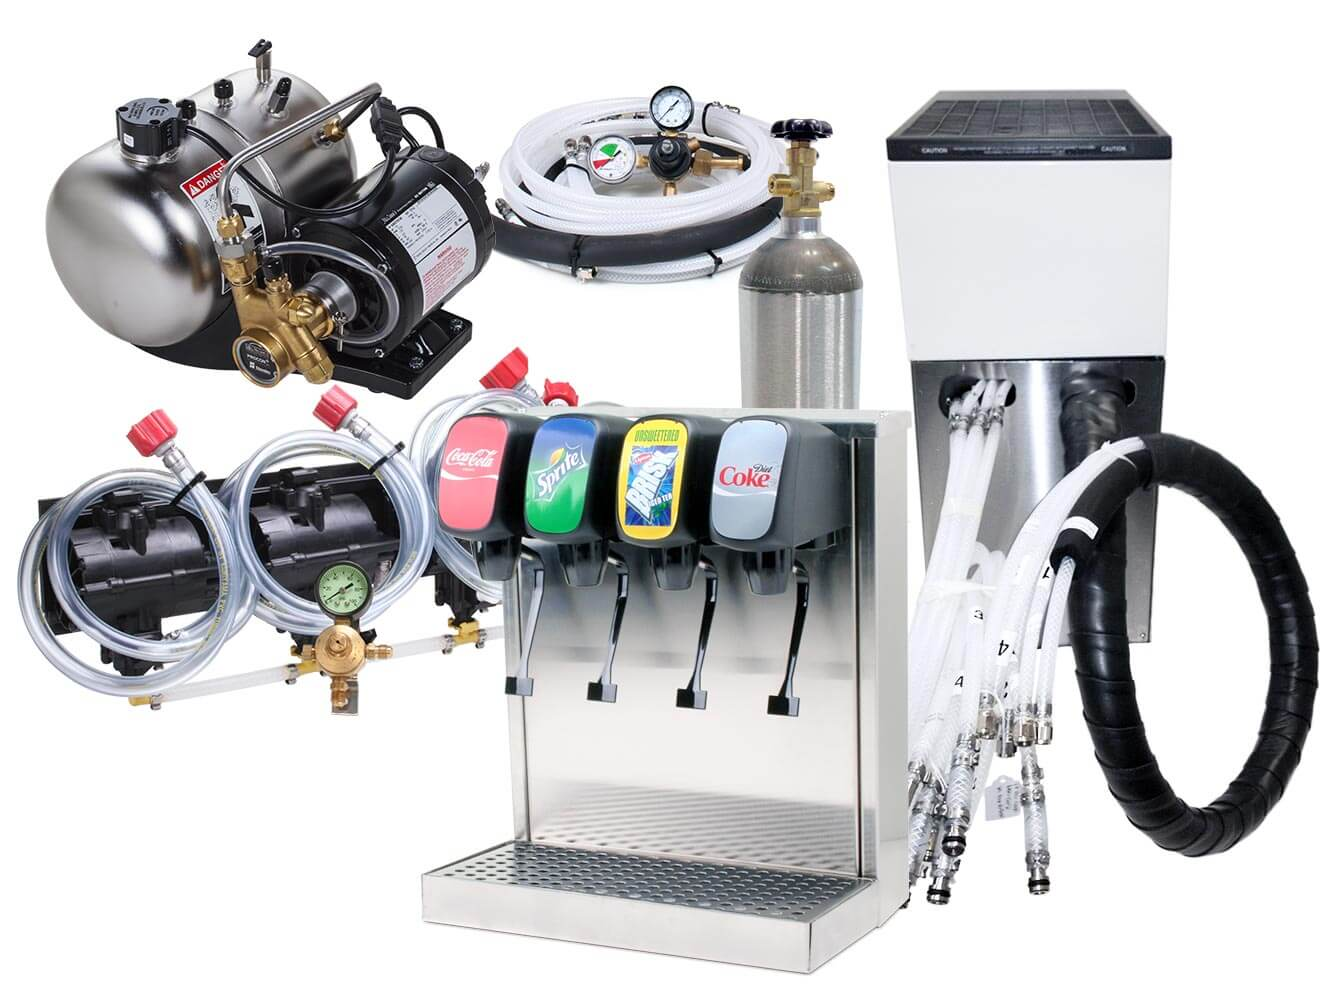 6-Flavor Tower Soda Fountain System with Remote Cooler (NEW)